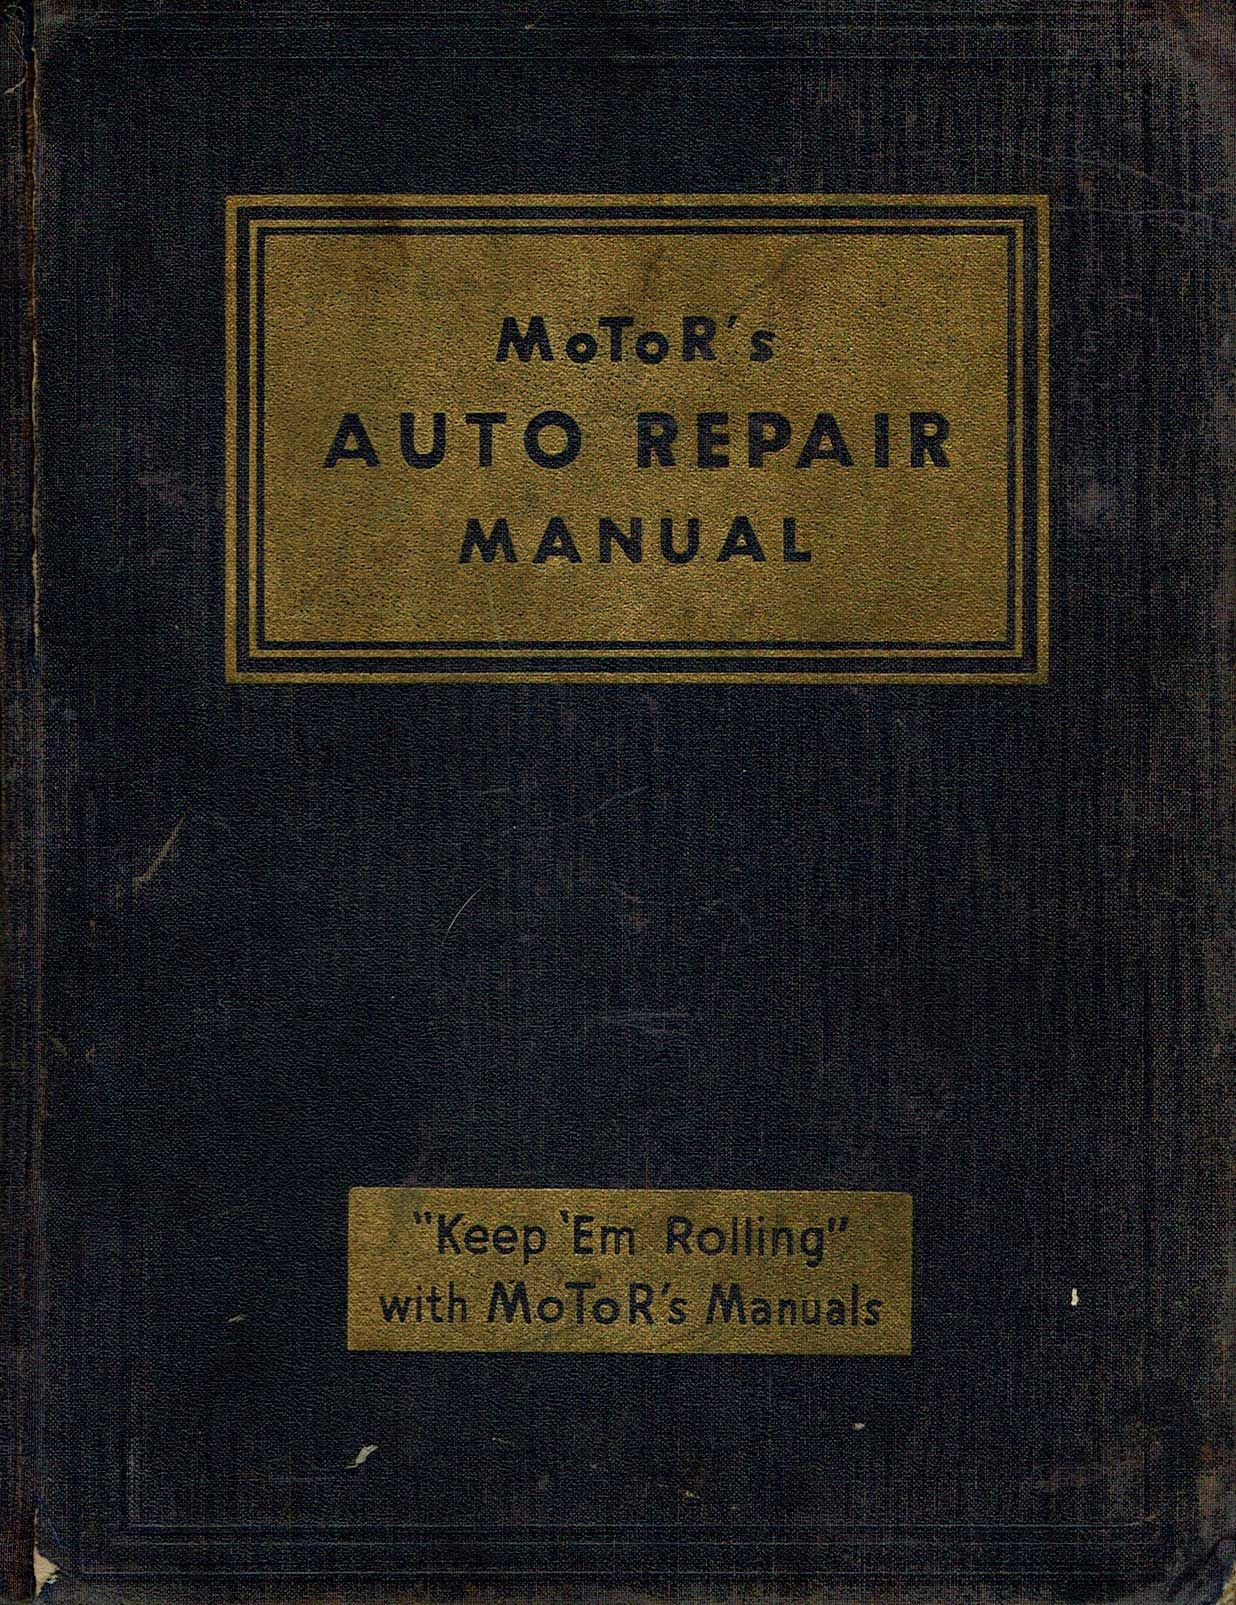 Motor U0026 39 S Auto Repair Manual Thirteenth Edition 1950 By